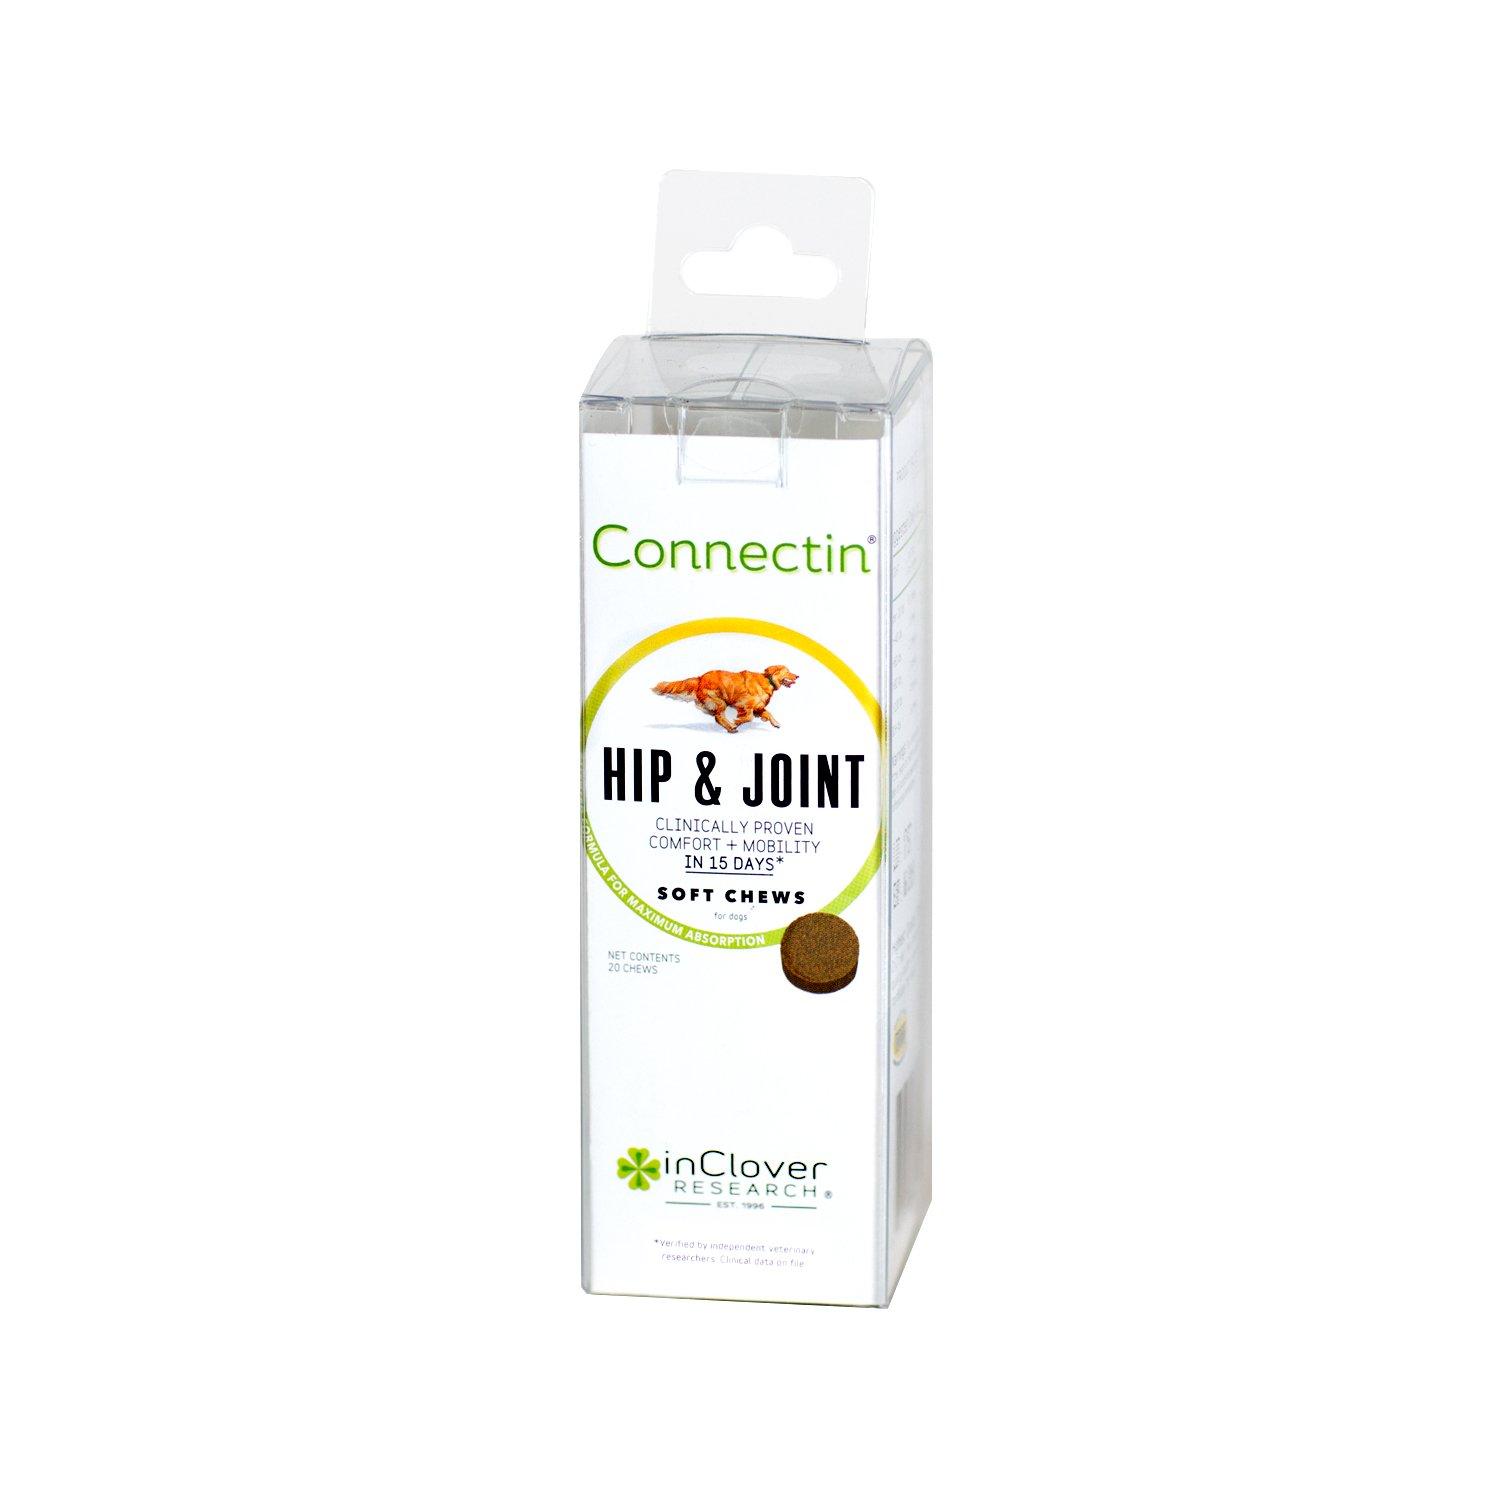 In Clover Connectin Hip and Joint Soft Chew Supplement for Dogs, Combines Glucosamine, Chondroitin and Hyaluronic Acid with Herbs, Patented and Clinically Tested to Work in 15 Days, 20 Count